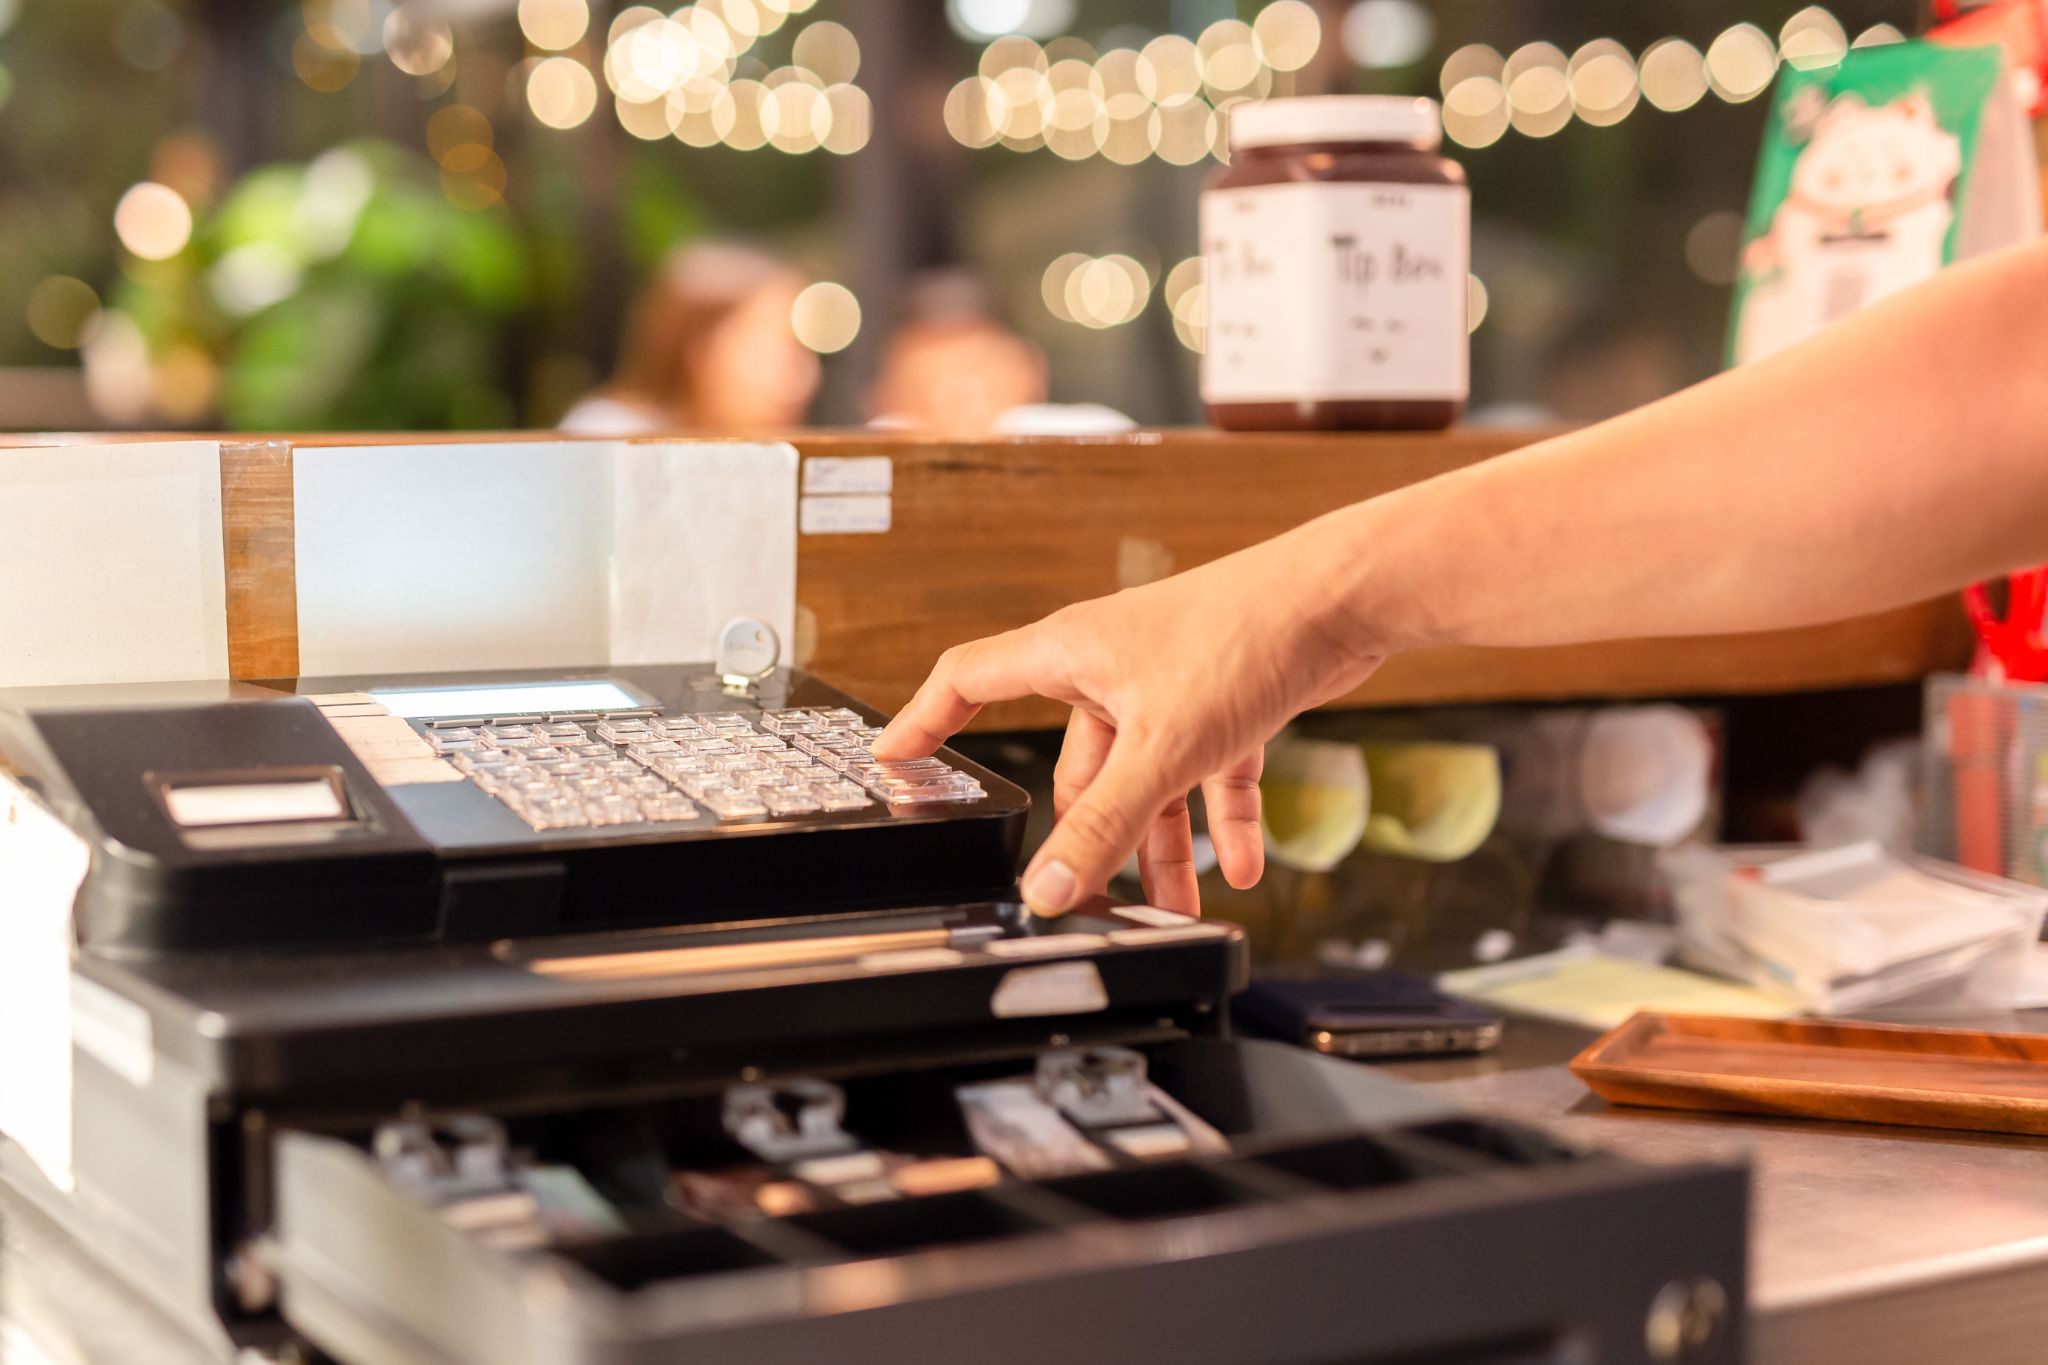 Hand pressing electronic cash register in a shop